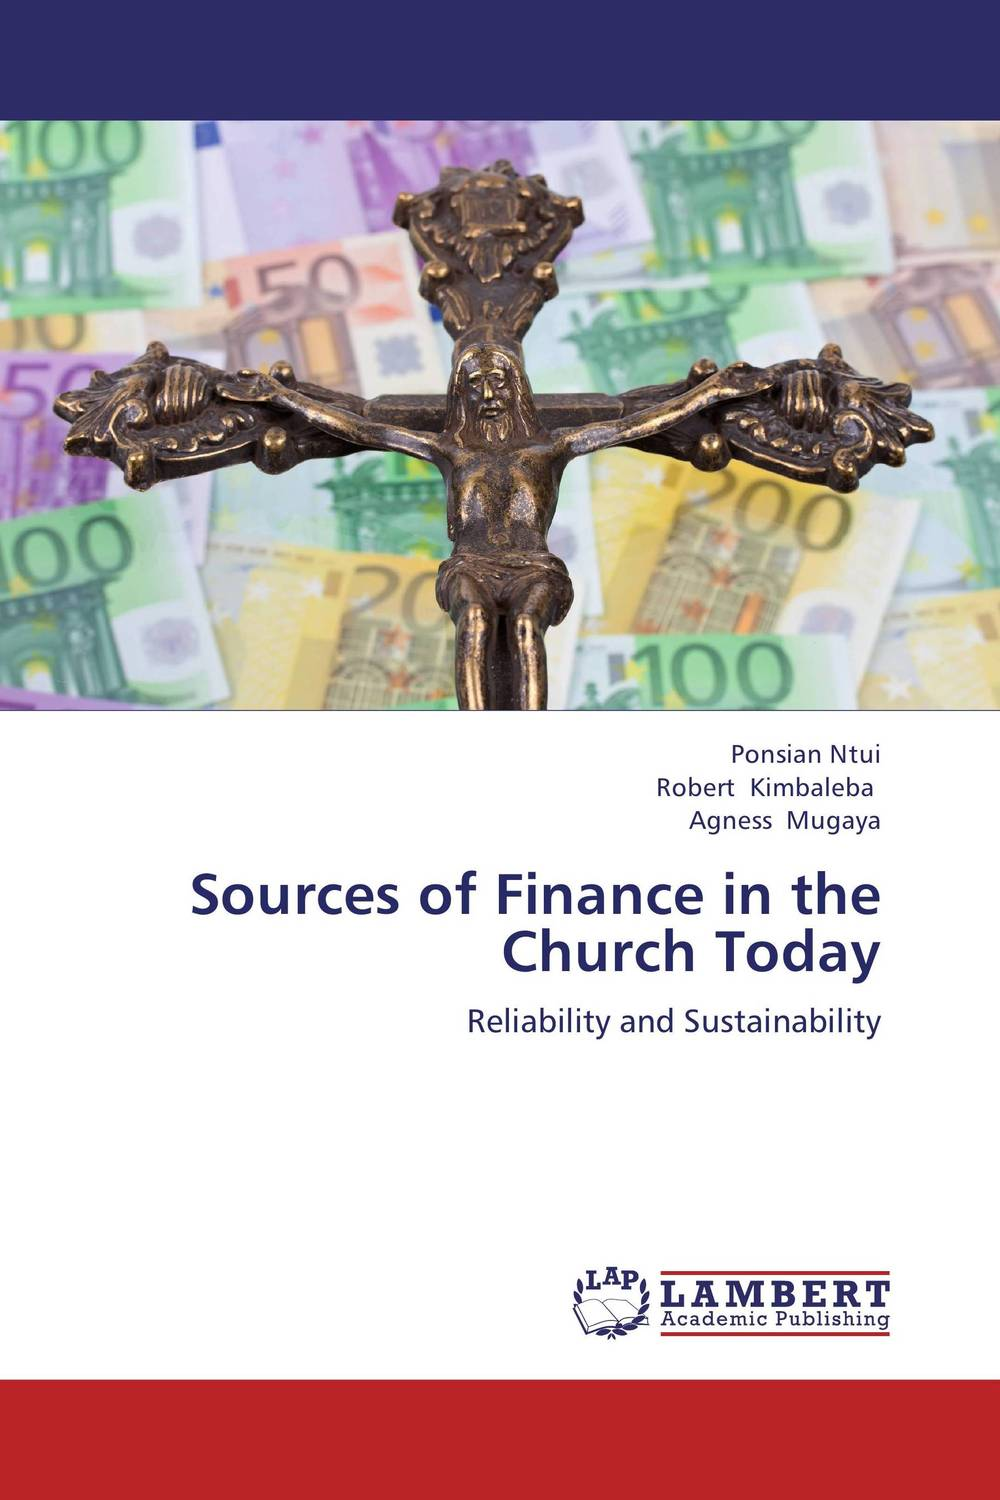 цена на Sources of Finance in the Church Today